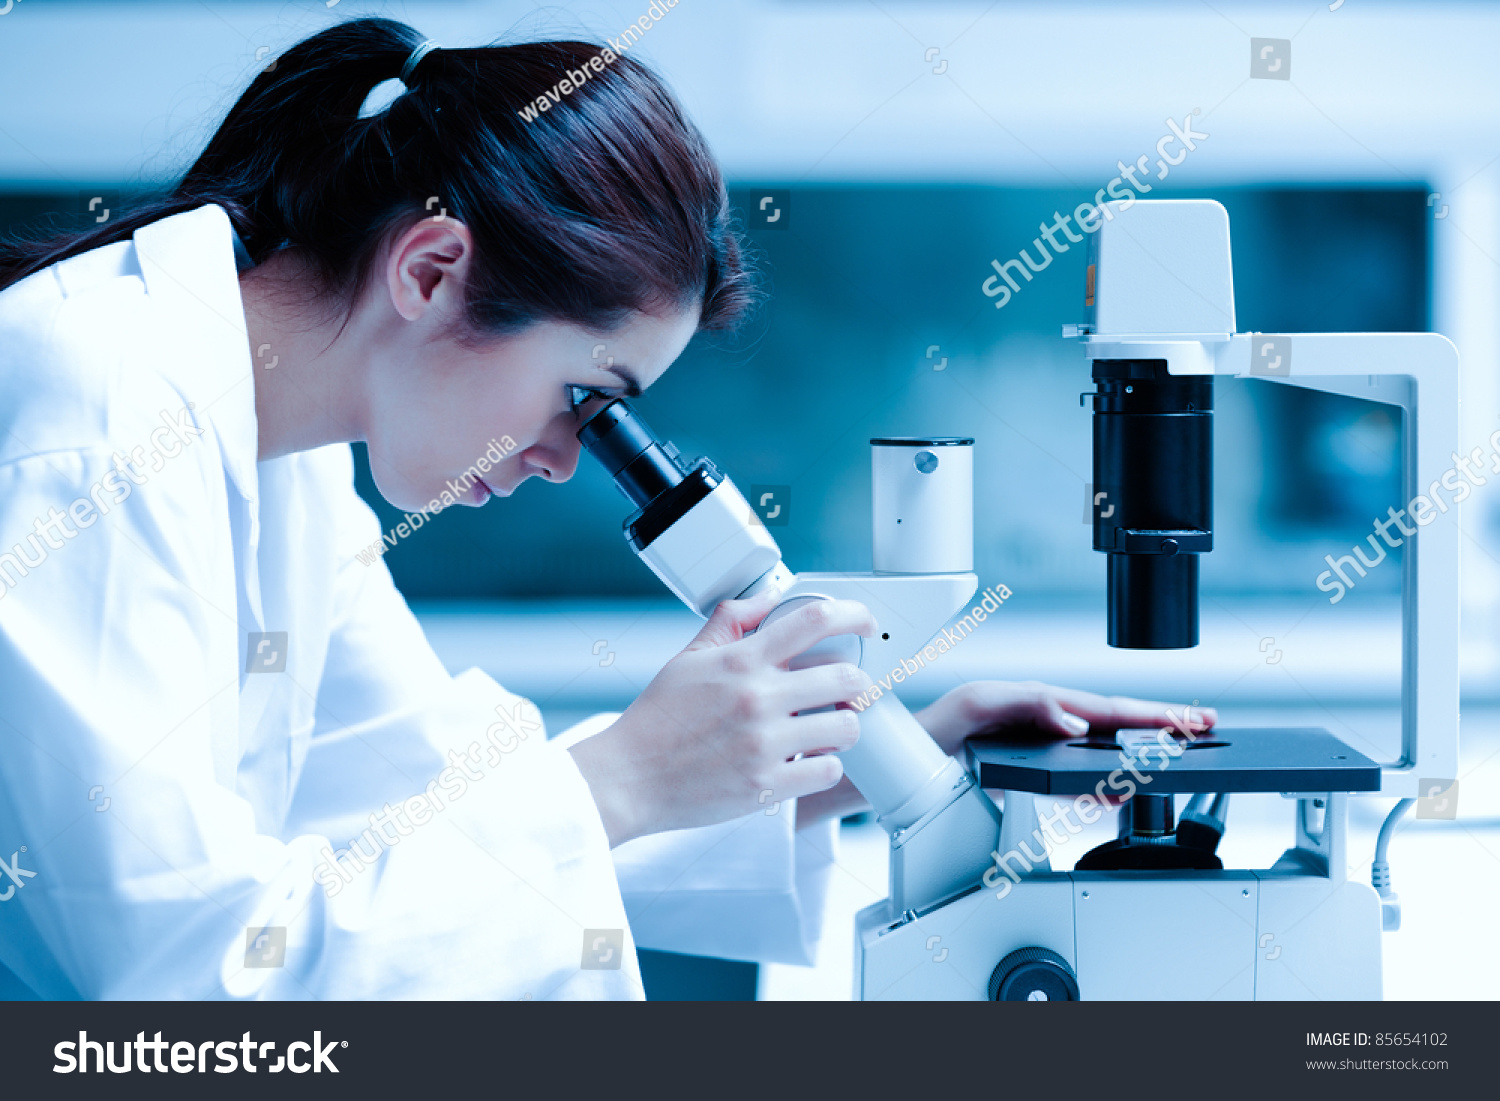 Scientist Using Microscope Laboratory Stock Photo 85654102 ...